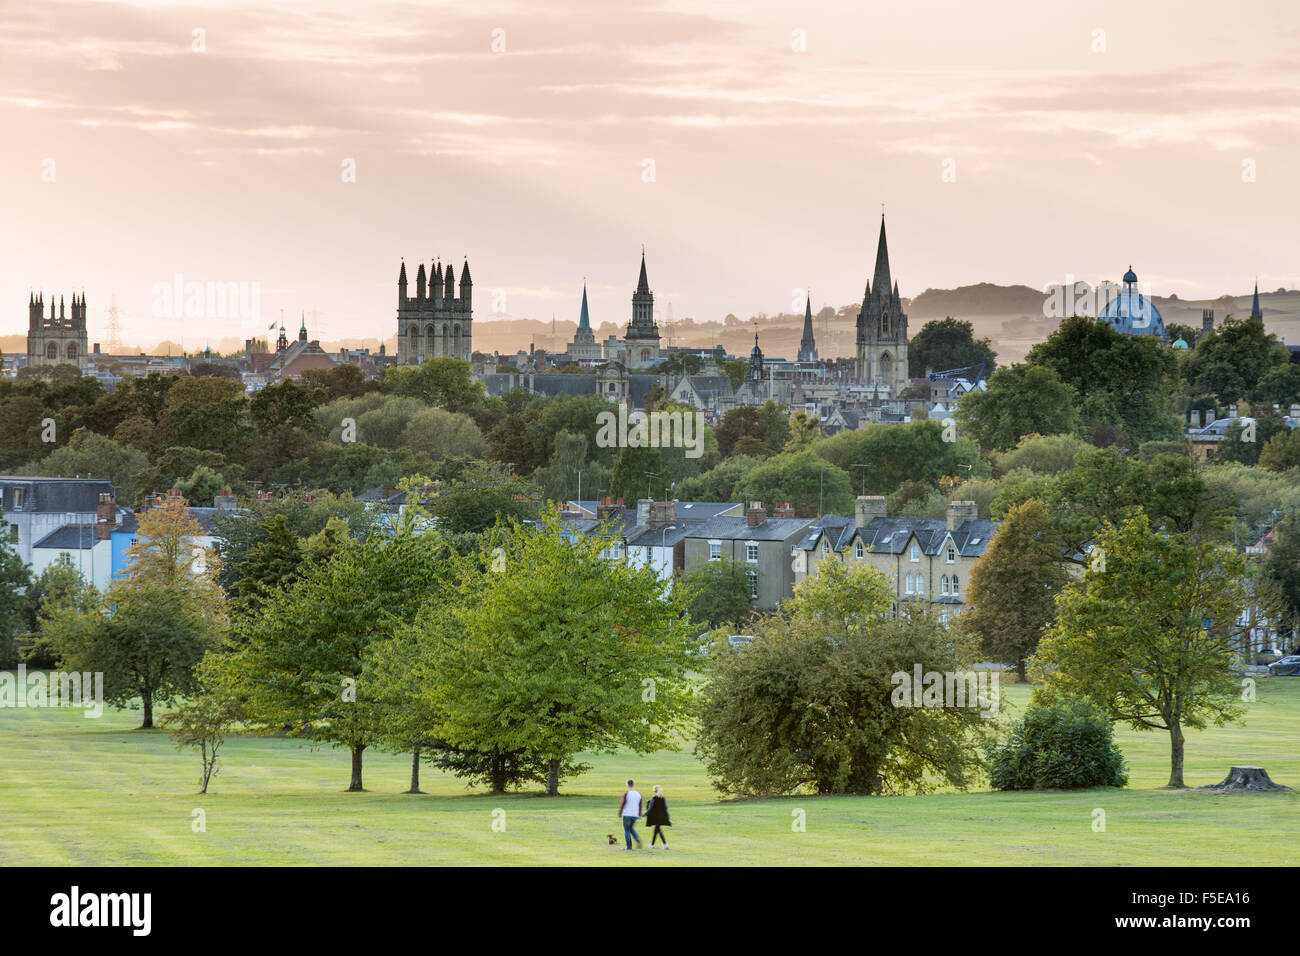 Oxford from South Park, Oxford, Oxfordshire, England, United Kingdom, Europe - Stock Image